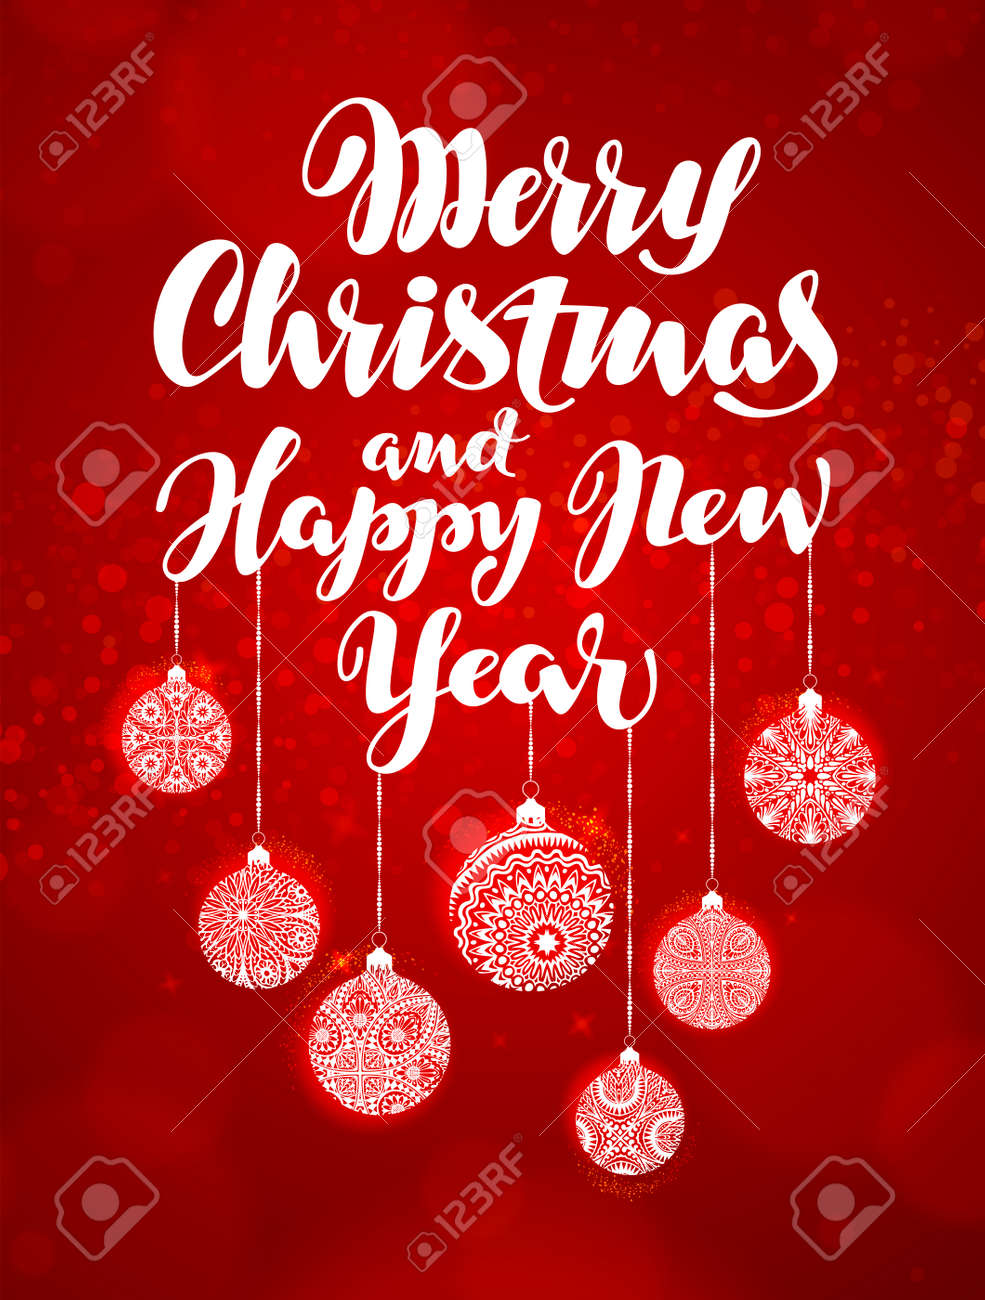 merry christmas and happy new year banner beautiful greeting lettering decorated with decorative xmas